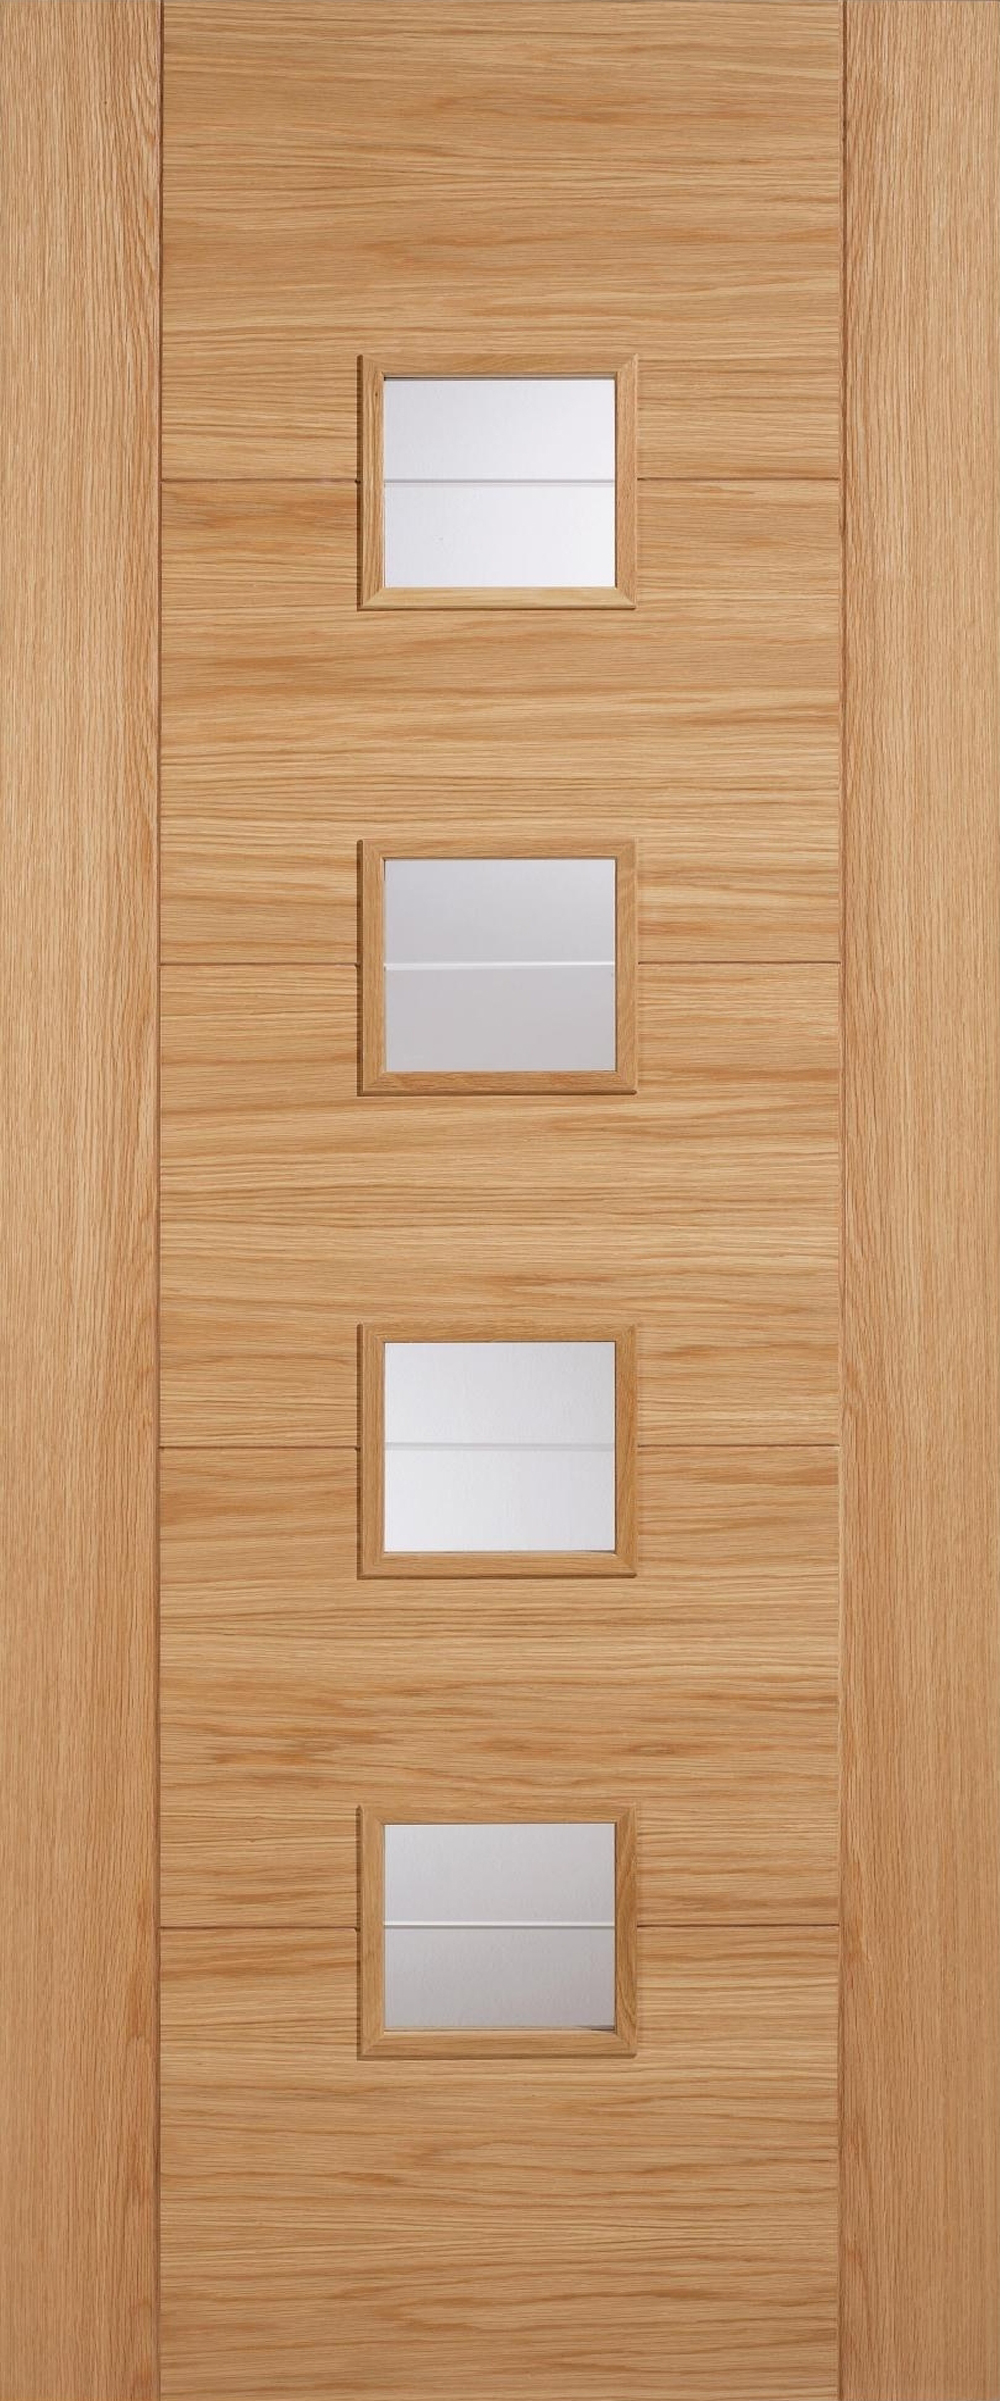 Vancouver 4L Glazed Oak Interior Door image & Vancouver 4 Light Glazed Oak Interior Door